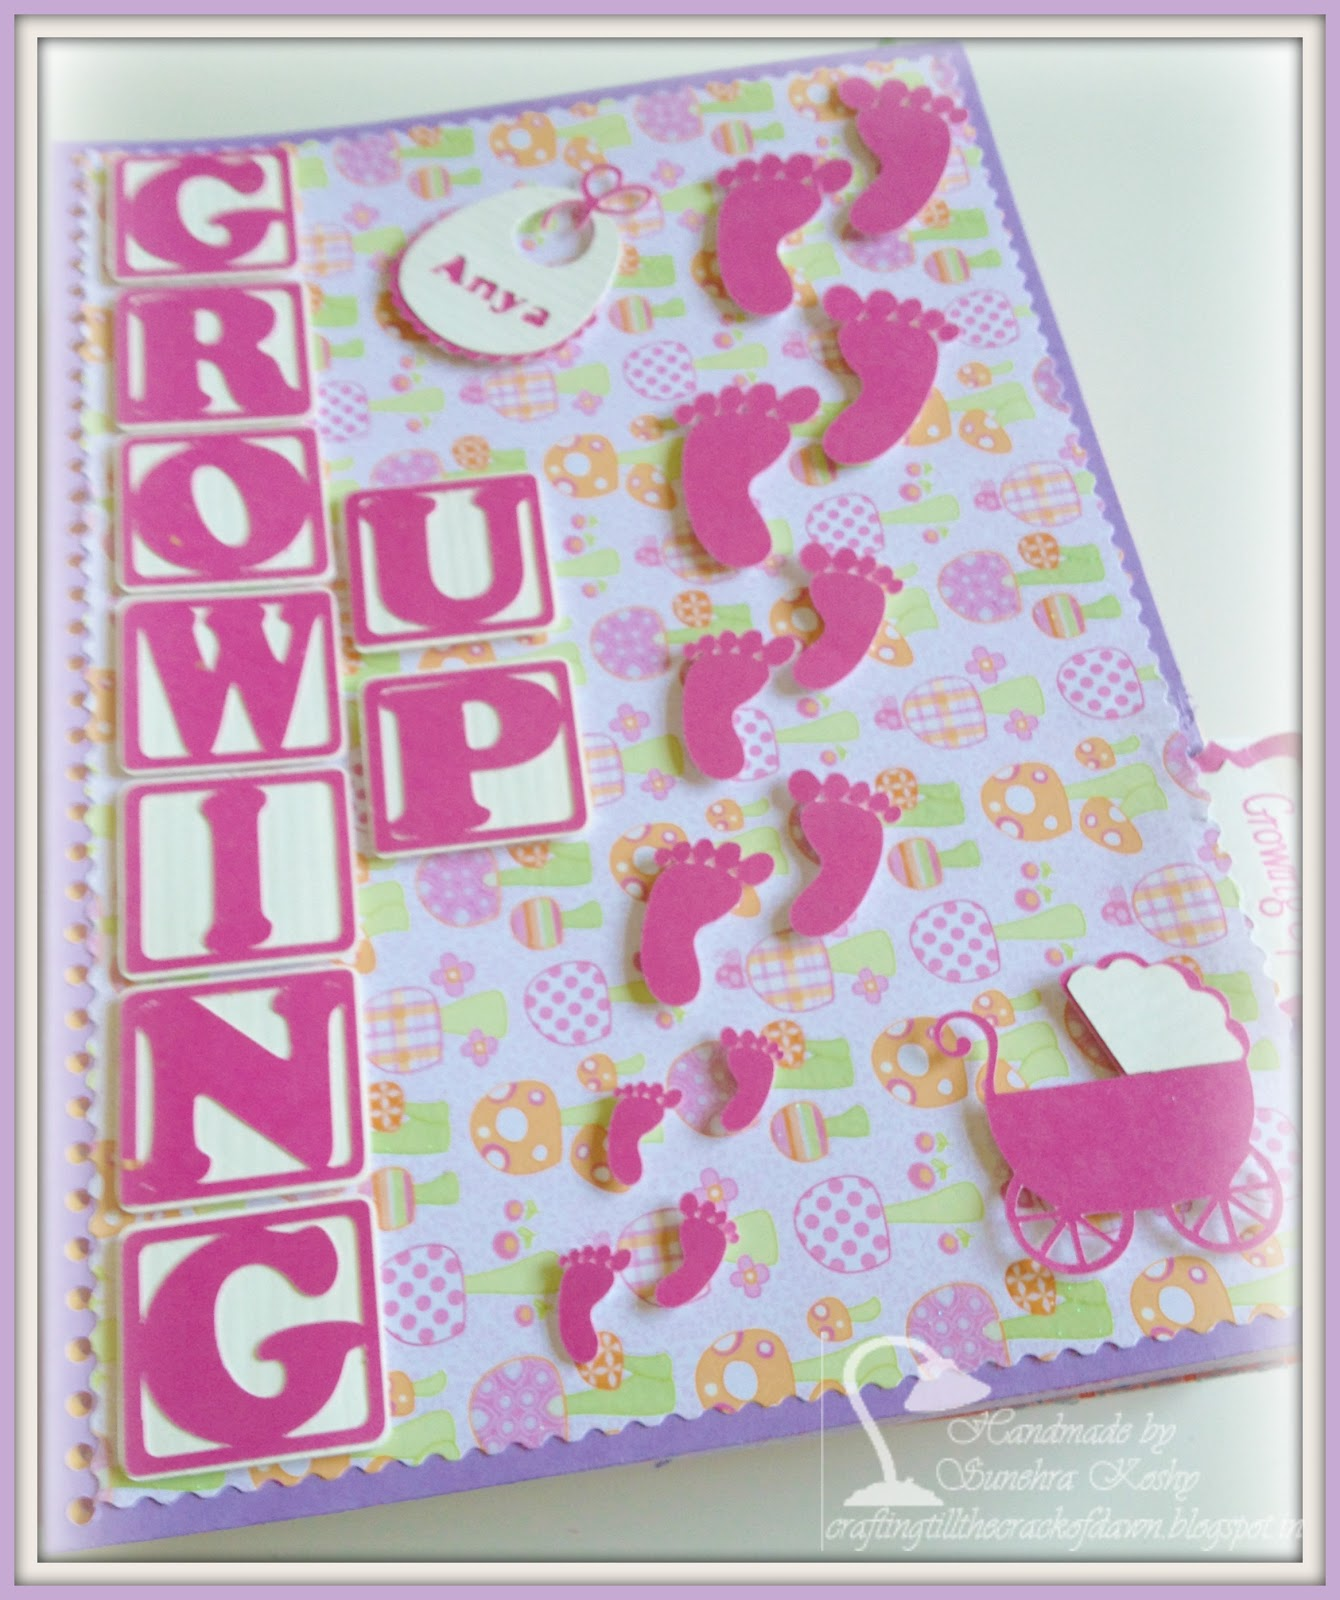 Book Cover Design Ideas For Girls : Crafting till the crack of dawn baby is growing up